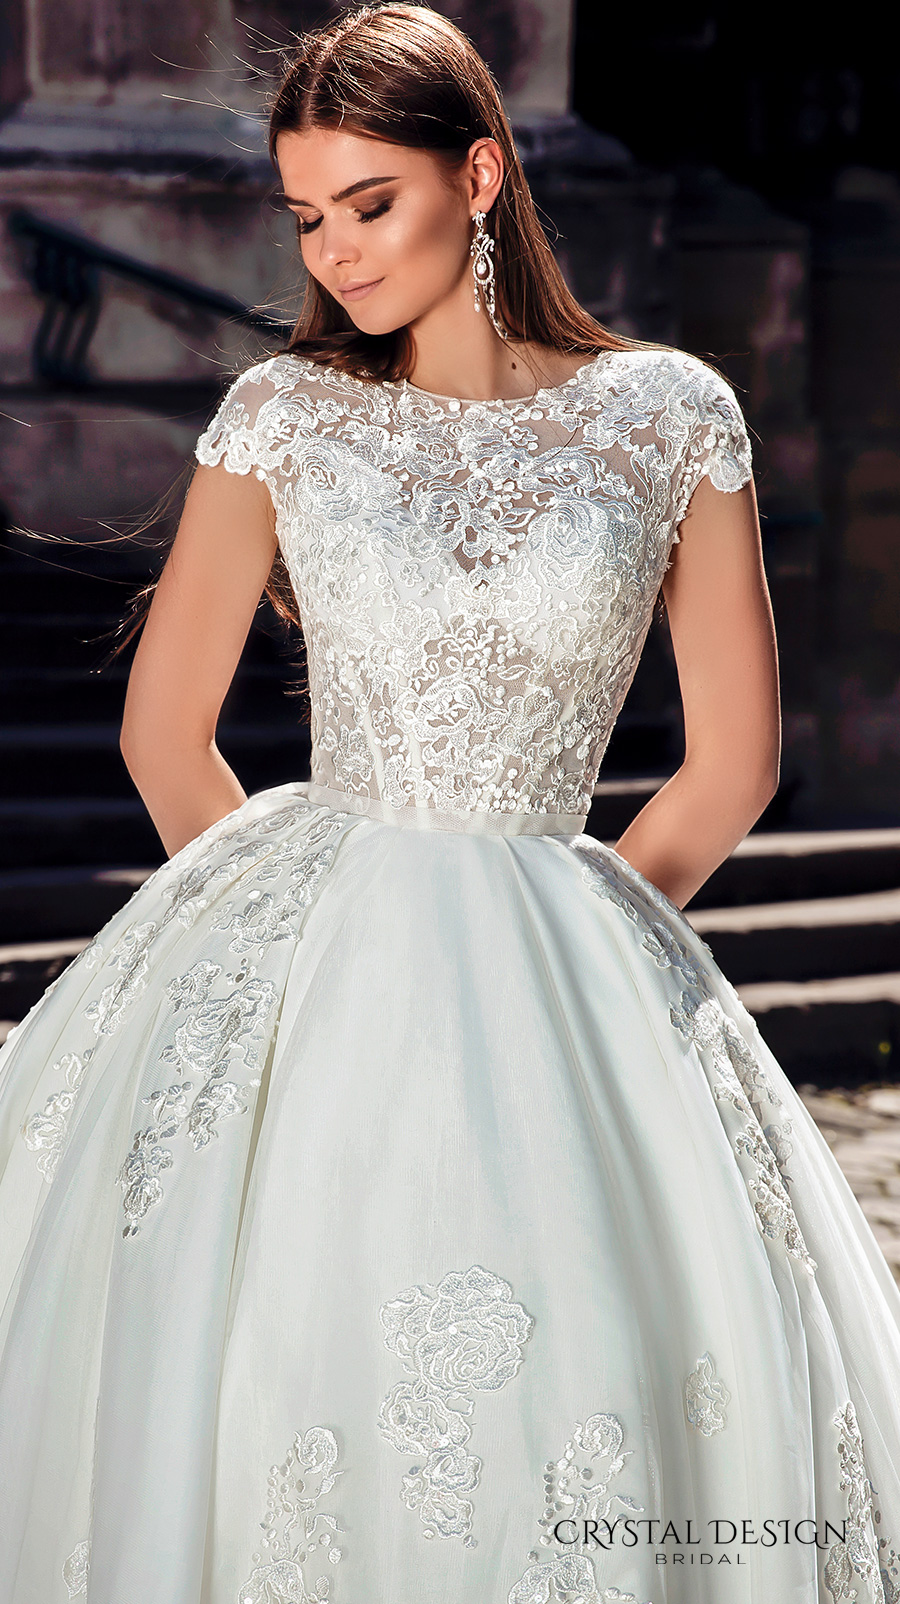 crystal design bridal 2016 cap sleeves jewel neckline heavily embellished bodice princess ball gown wedding dress monarch train (golden) zv